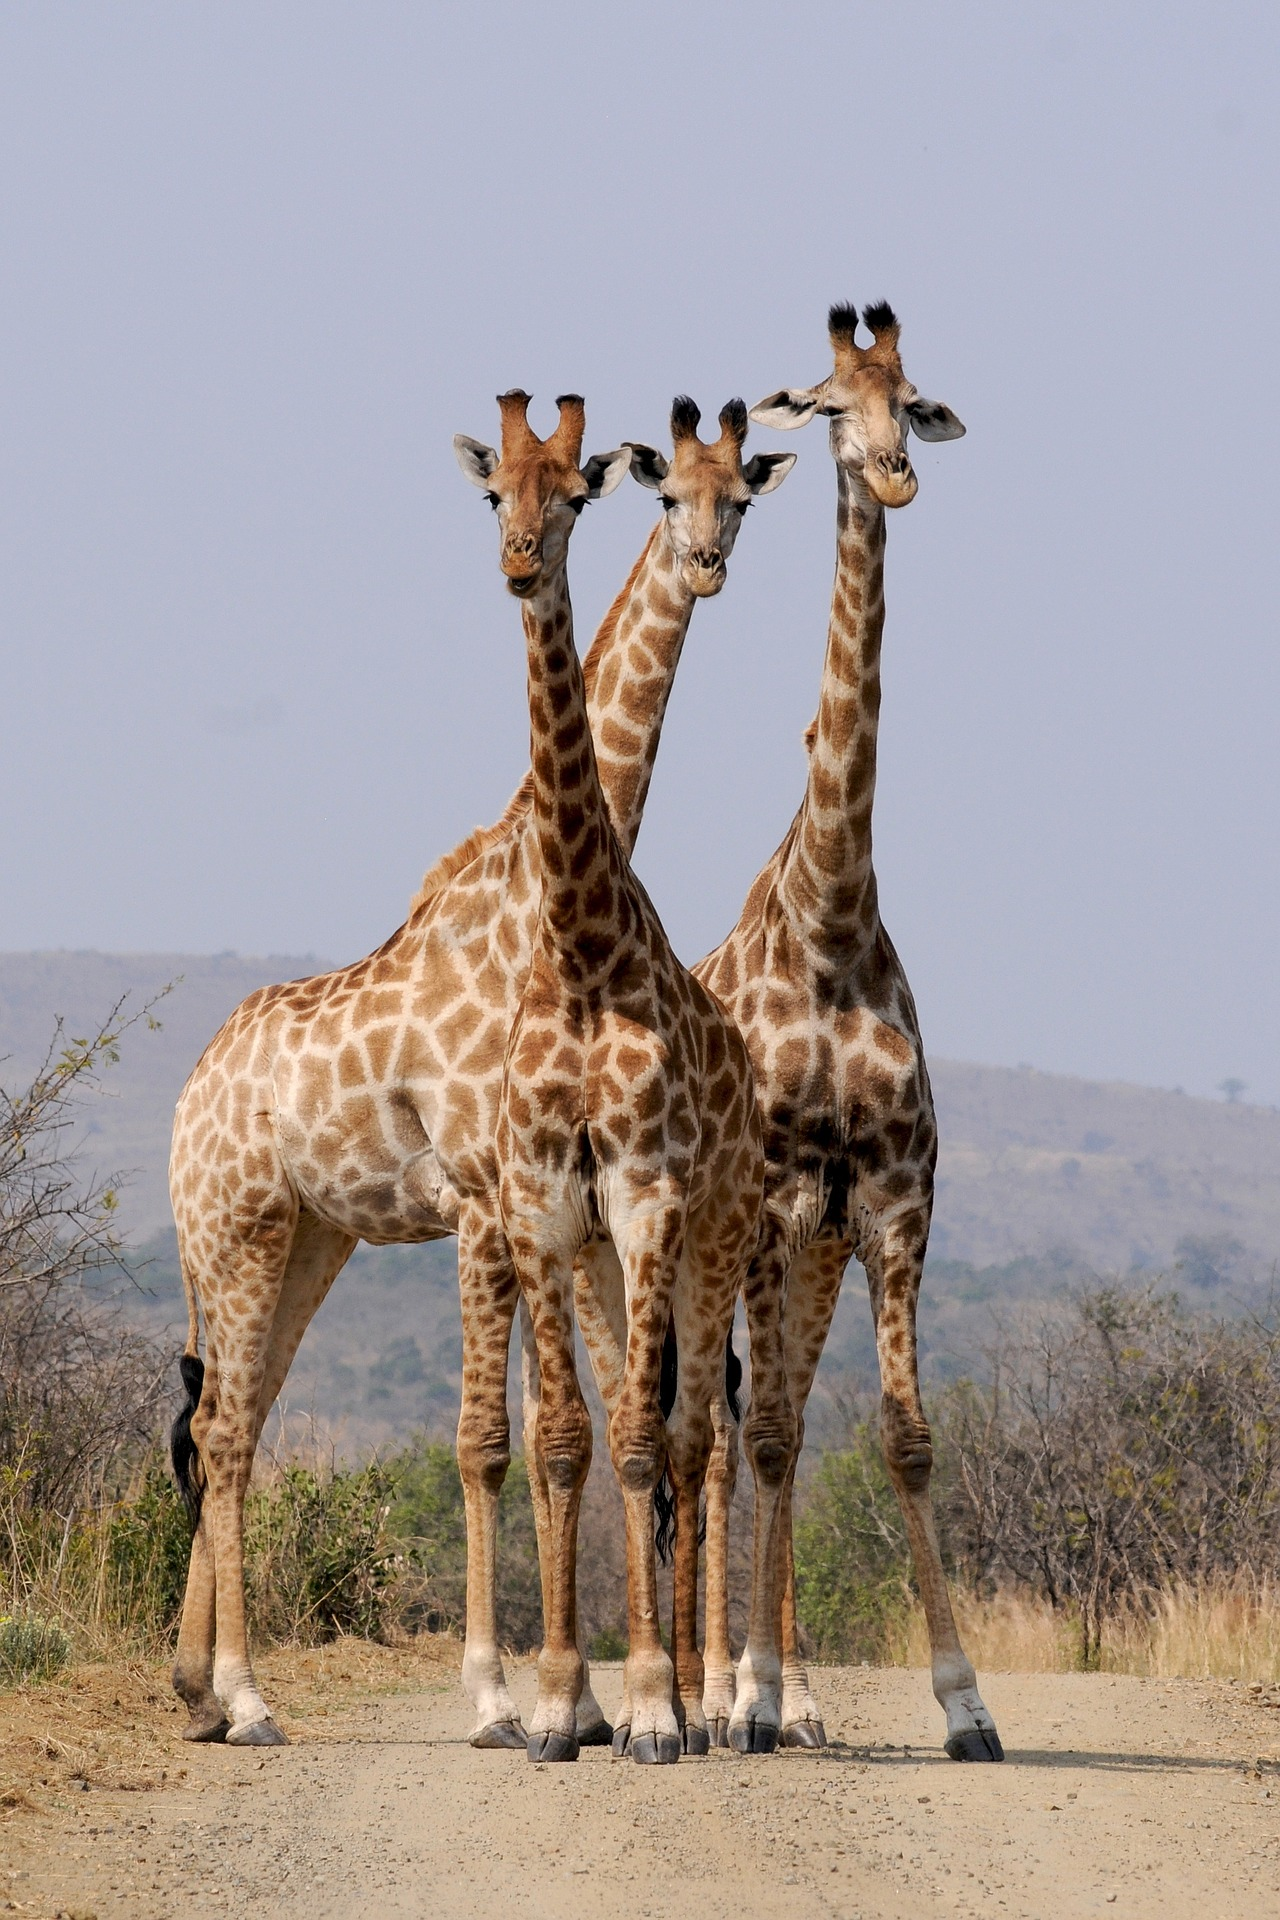 Giraffes in Hluhluwe, South Africa